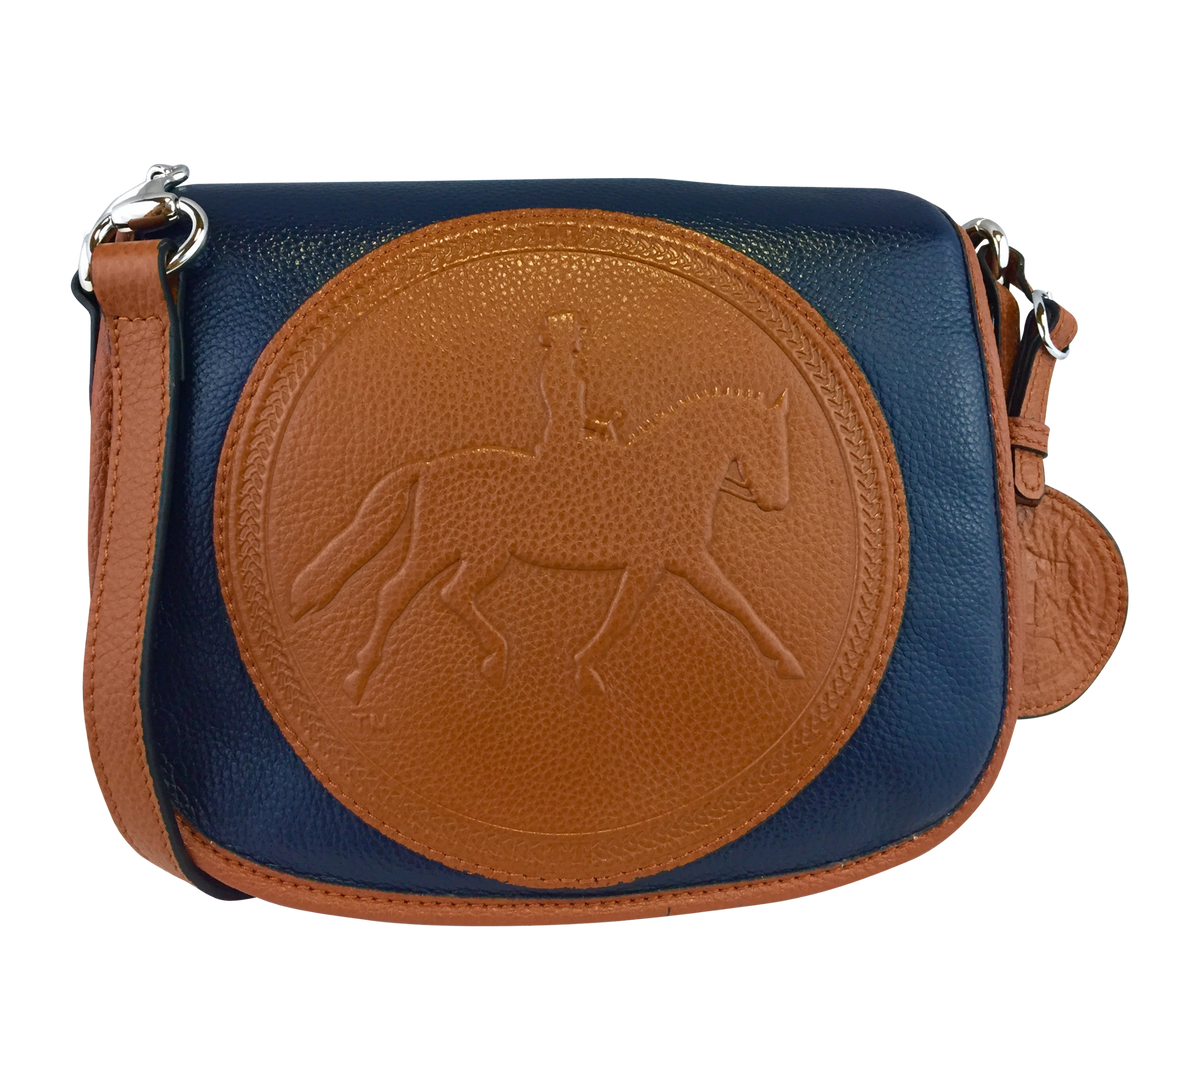 Tucker Tweed Leather Handbags Navy/Chestnut / Dressage The Camden Crossbody: Dressage